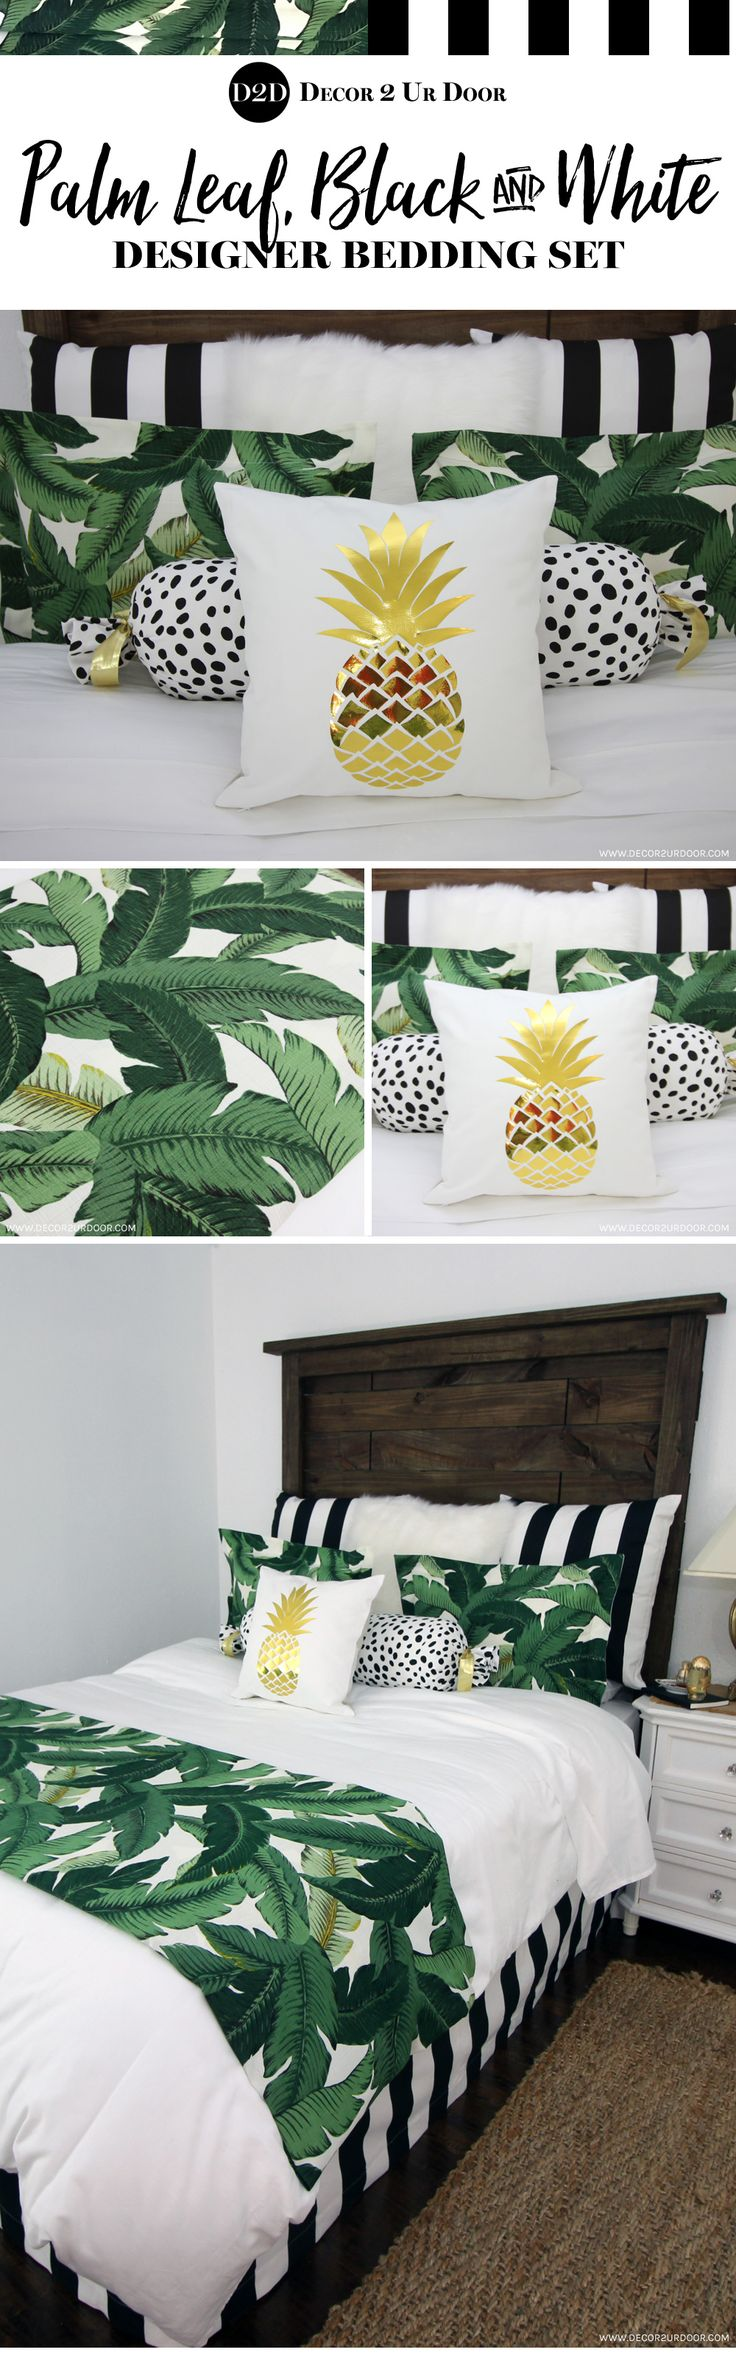 best 25+ tropical bedroom decor ideas on pinterest | tropical